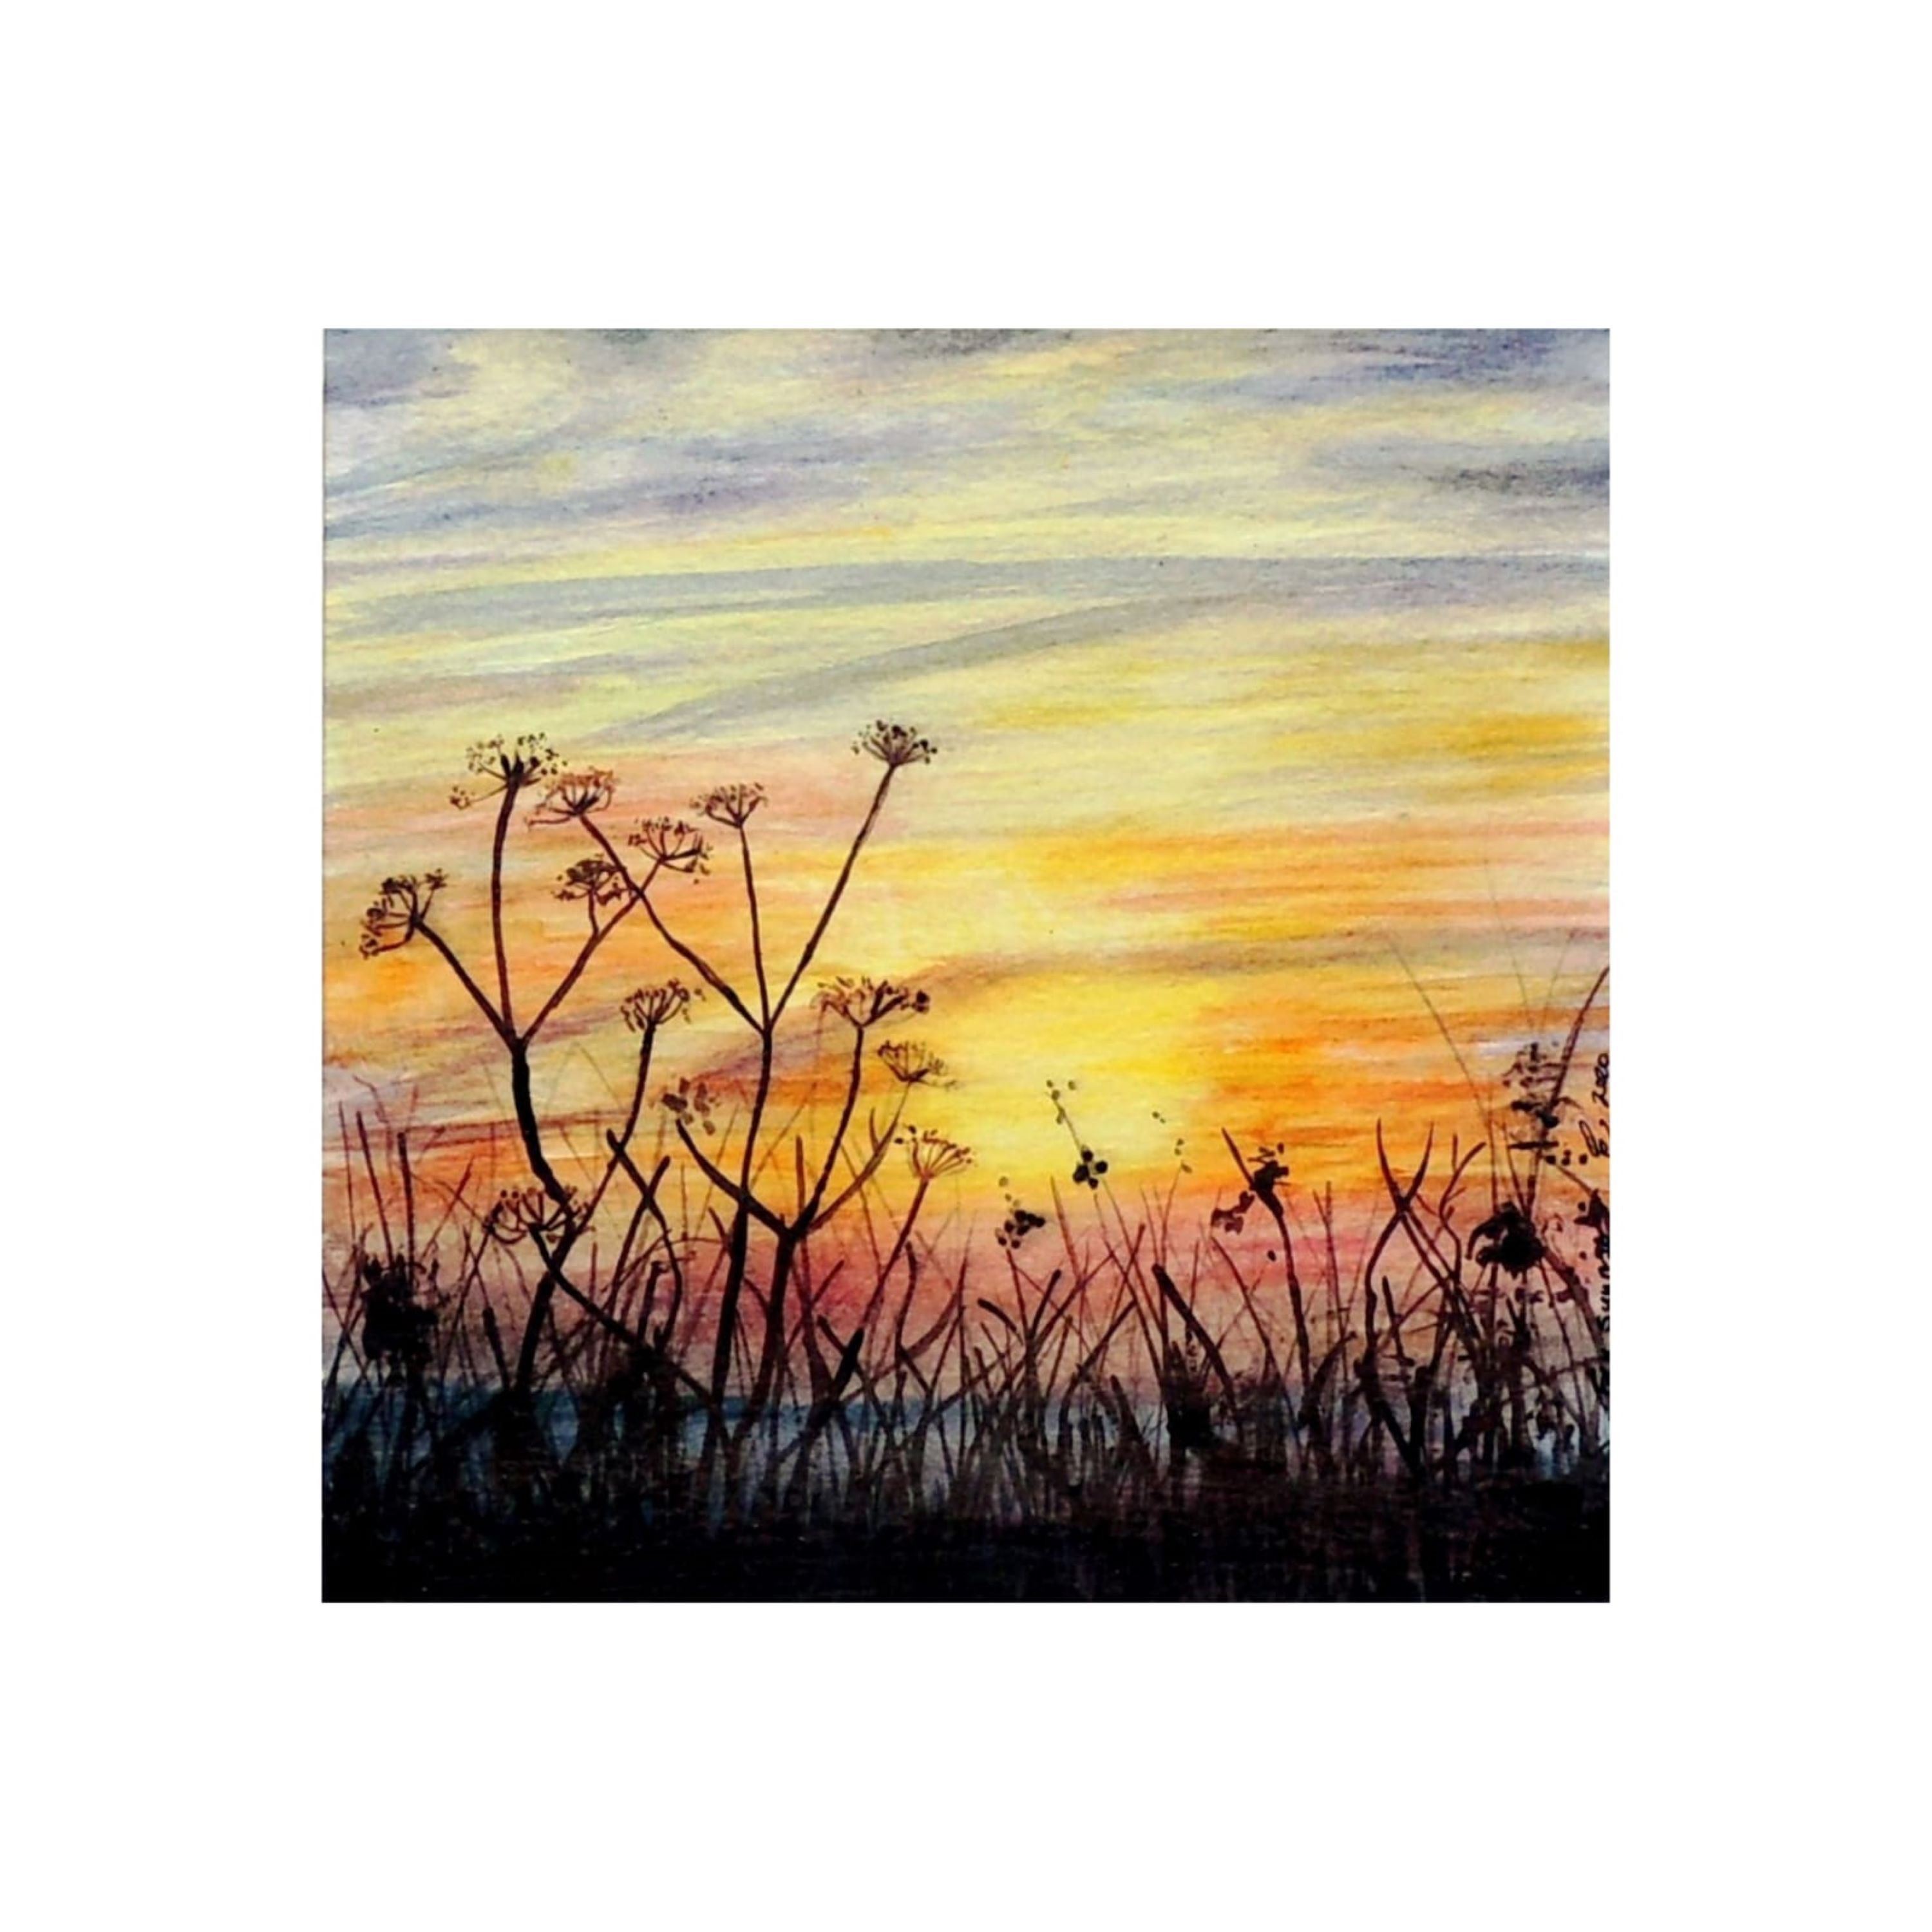 Sunrise & CowParsley (2)